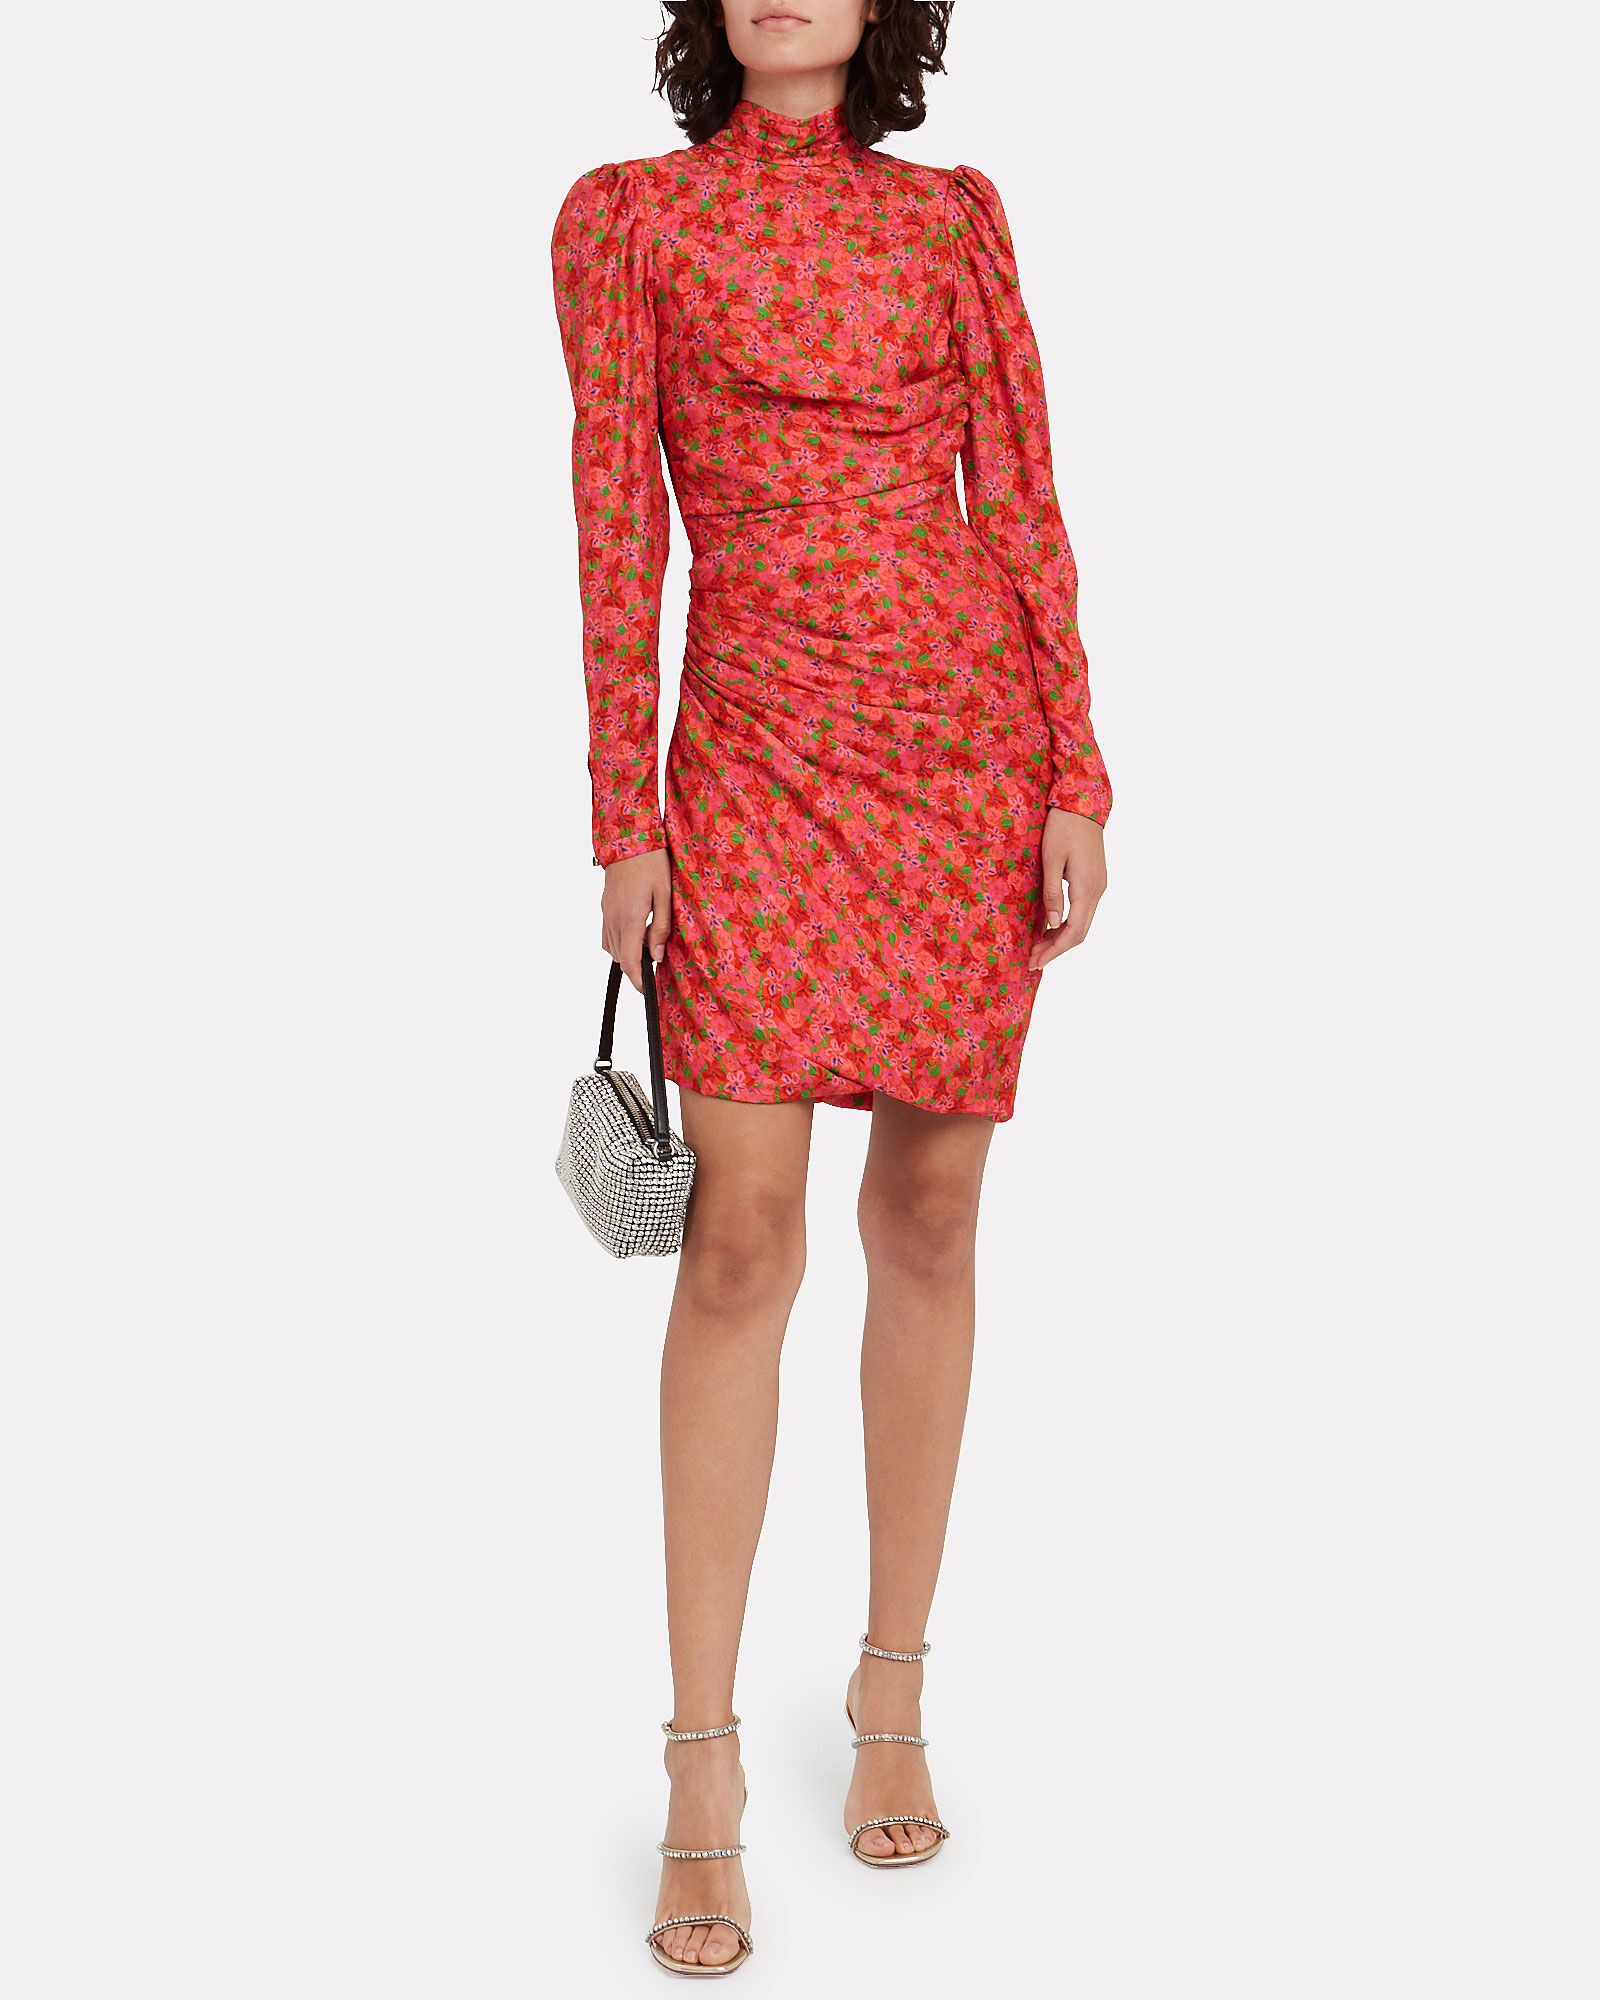 Vigdis Draped Floral Mini Dress, PINK/FLORAL, hi-res